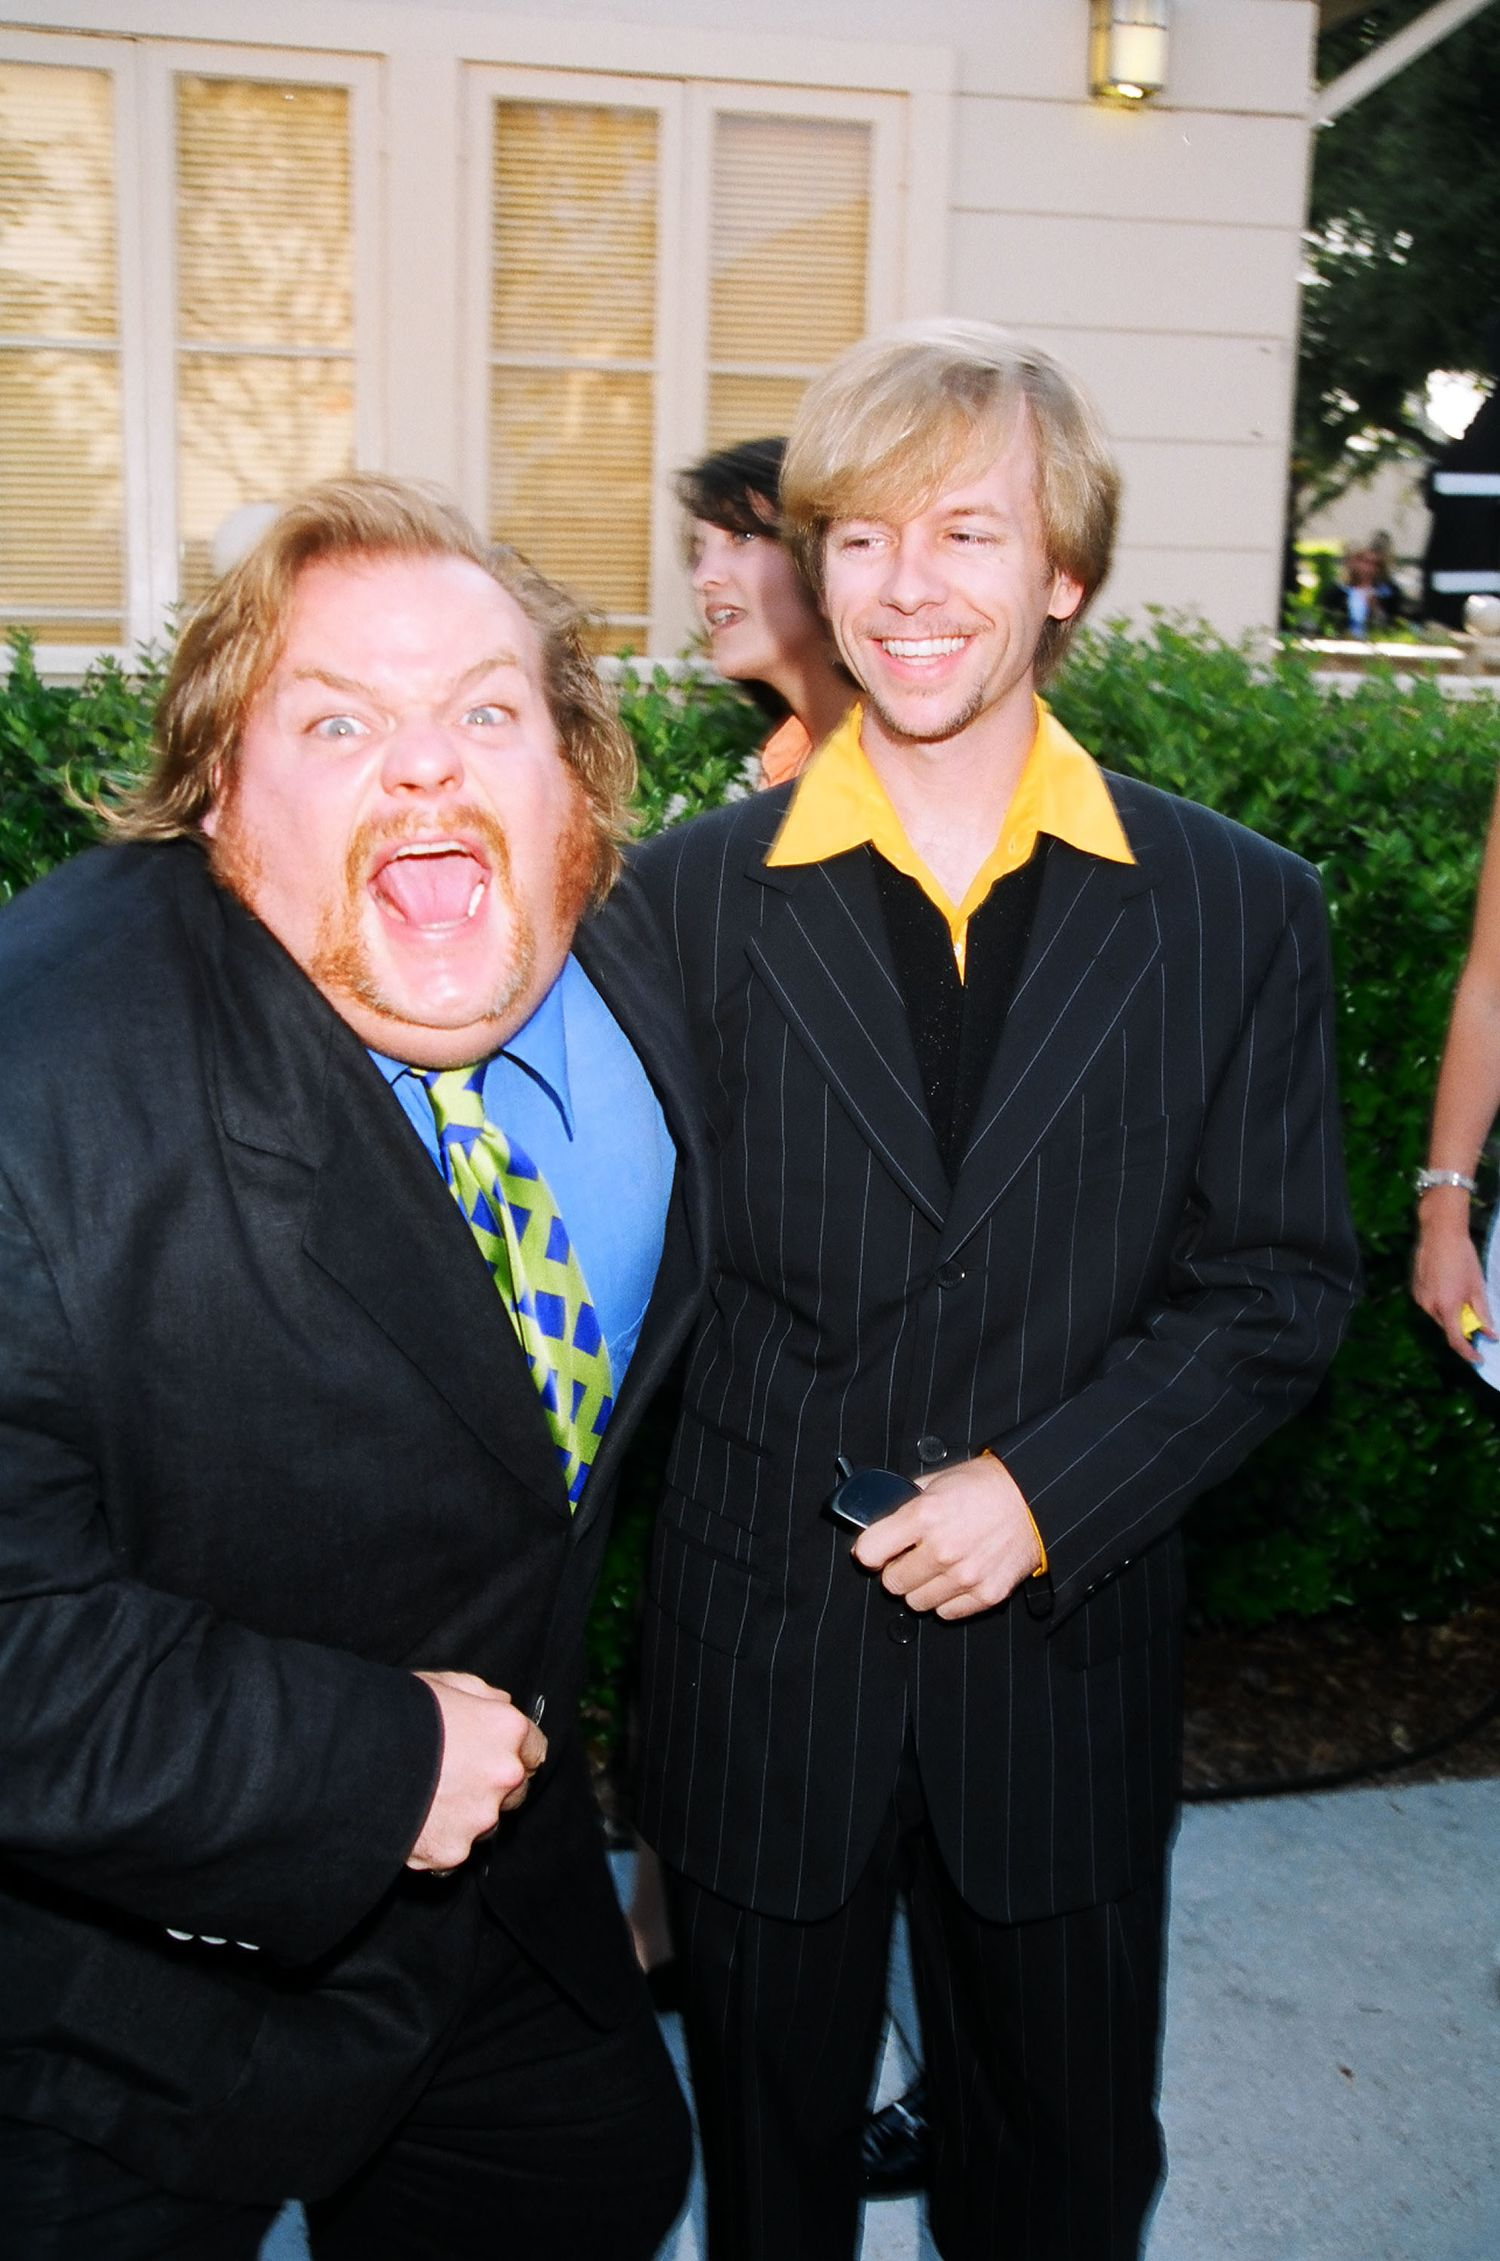 David Spade and Chris Farley during 1996 MTV Movie Awards in Los Angeles, California, United States. (Photo by Jeff Kravitz/FilmMagic, Inc)